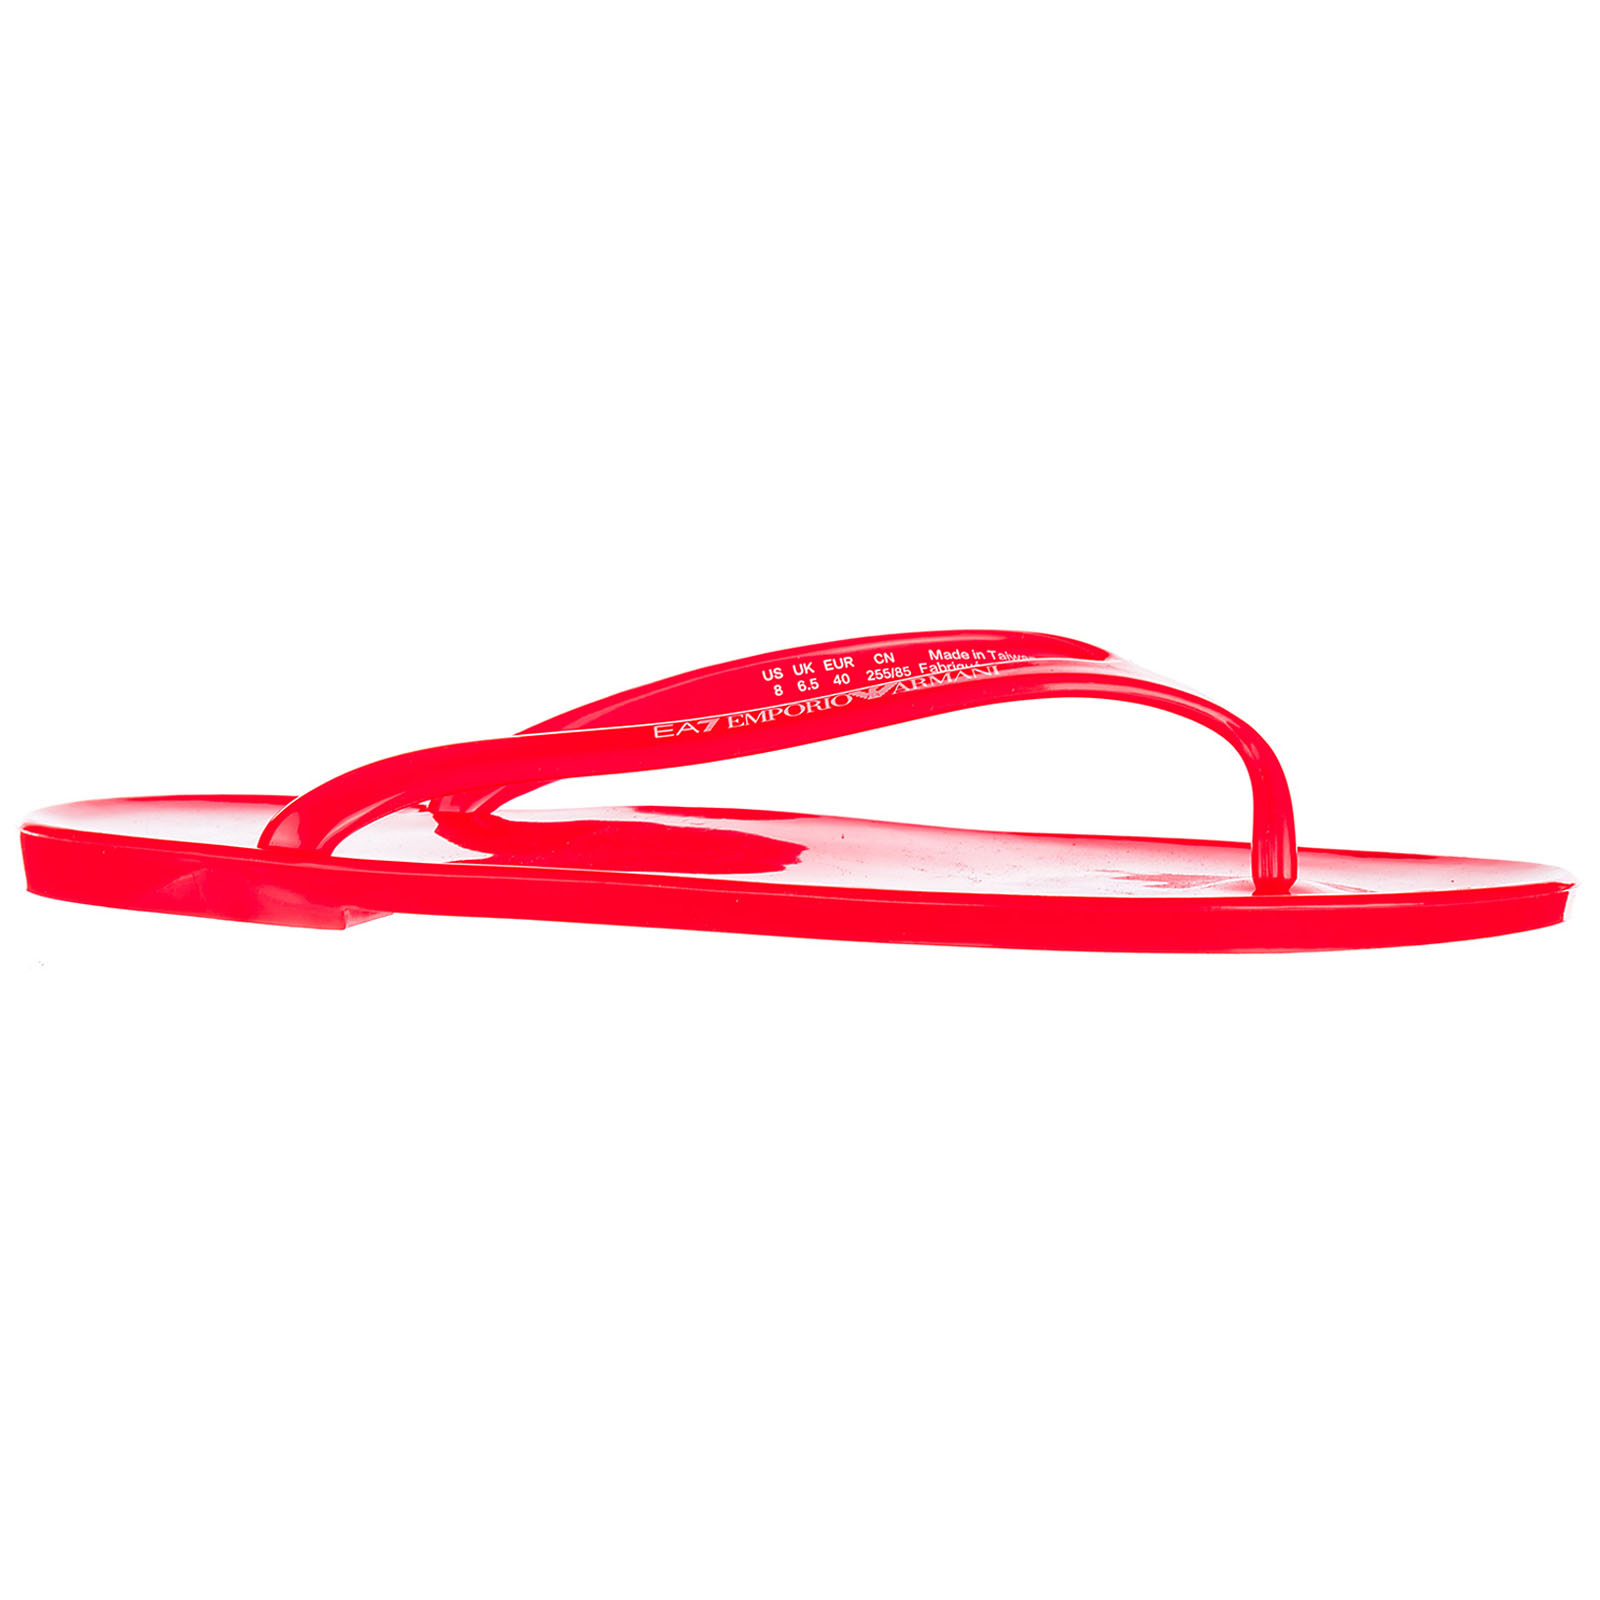 eece1182bff714 Women s rubber flip flops sandals jelly Women s rubber flip flops sandals  jelly ...